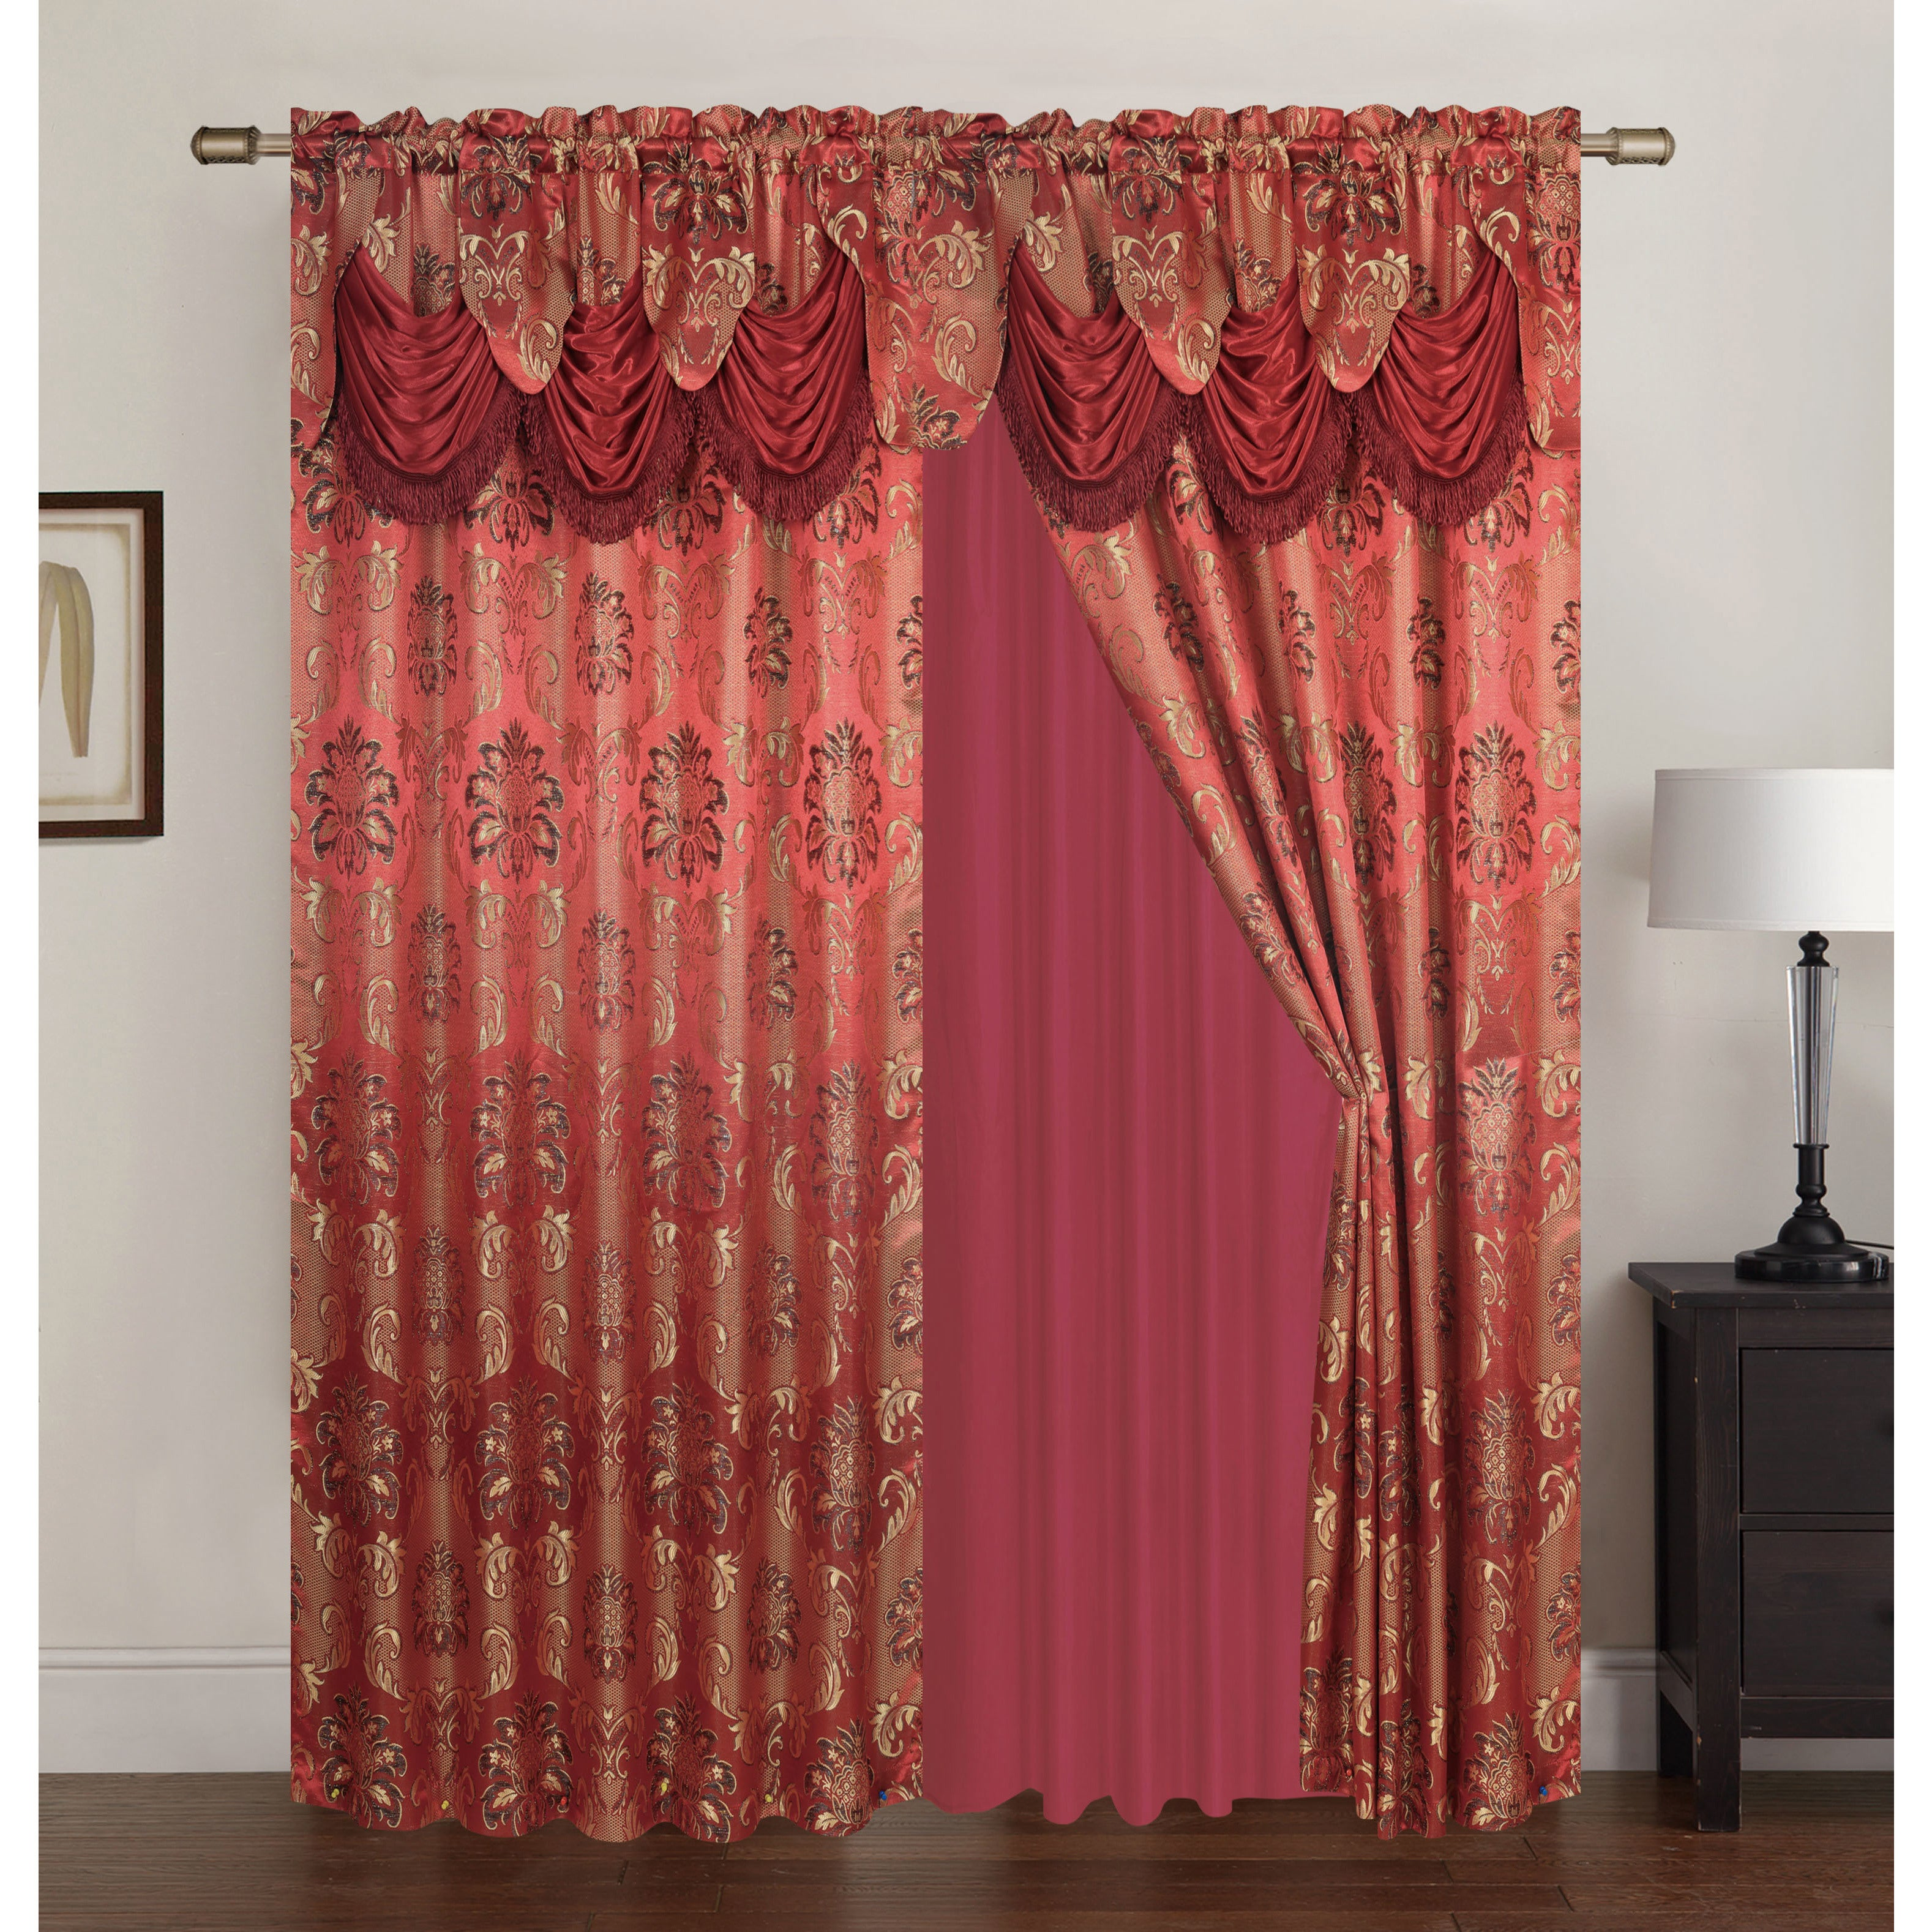 curtain garden pipe home over blackout free instyledesign wraparound product diameter inch overstock modern rod shipping adjustable curtains steel on orders